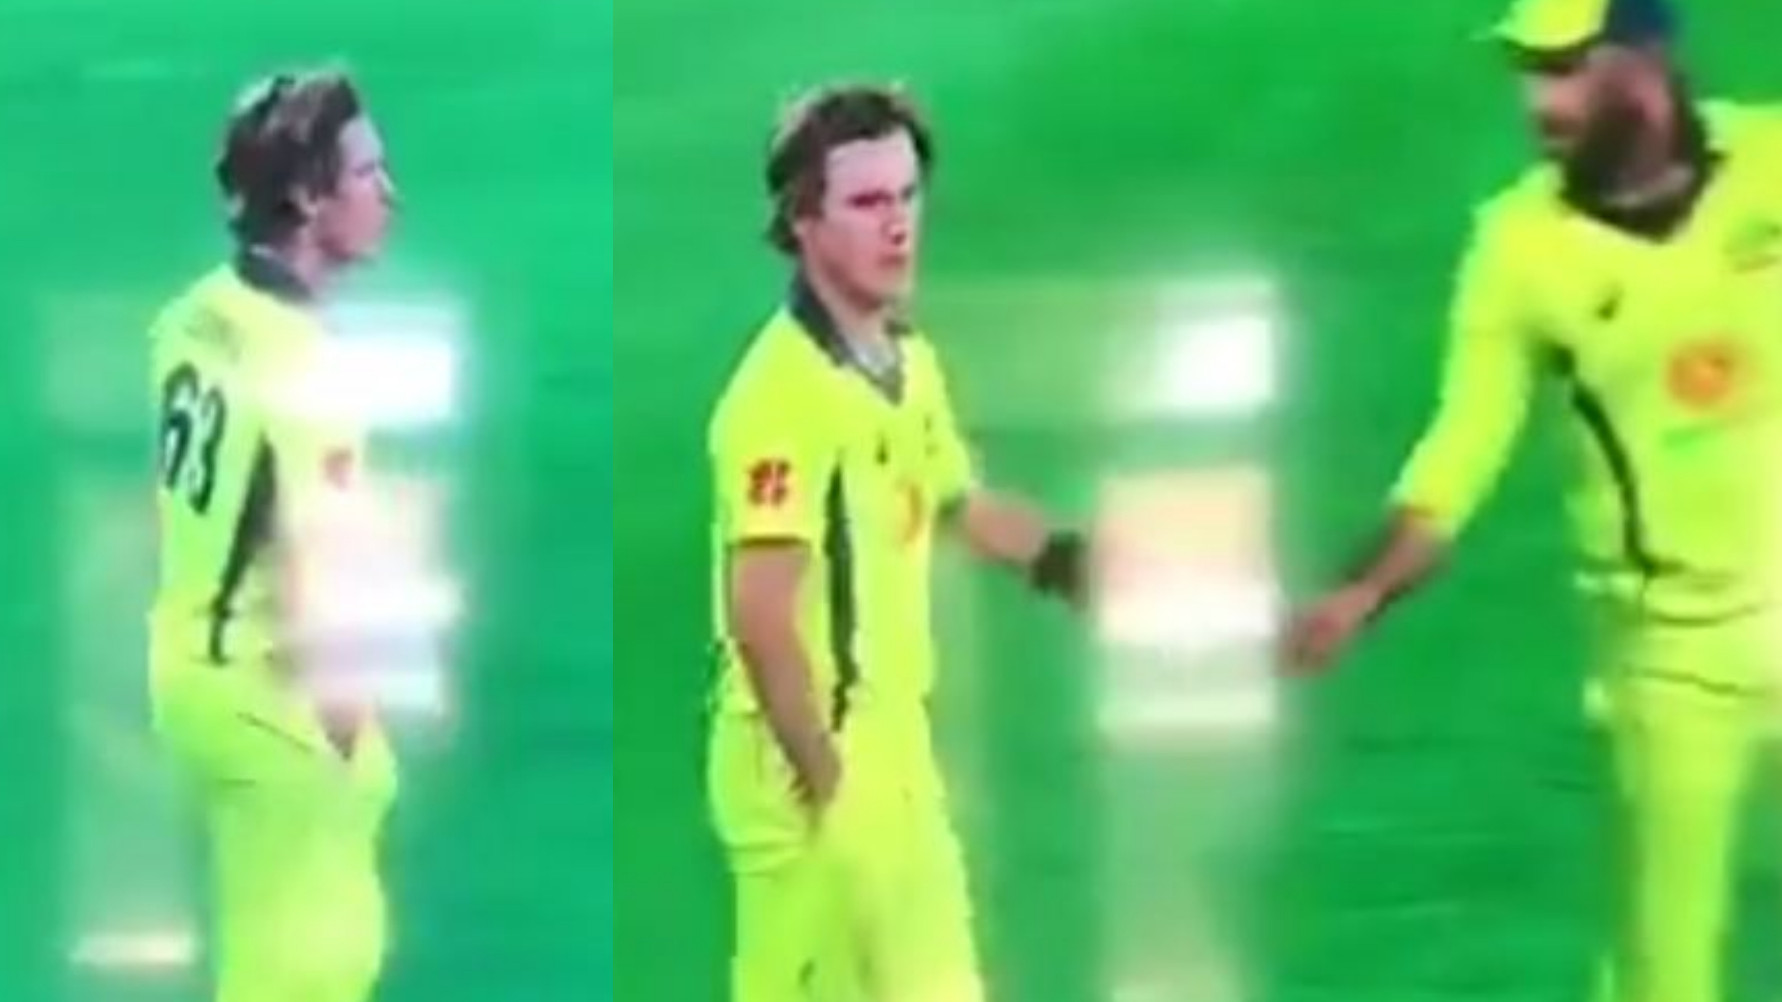 AUS v SA 2018: WATCH – Adam Zampa caught putting something on the ball from his pocket during the 2nd ODI